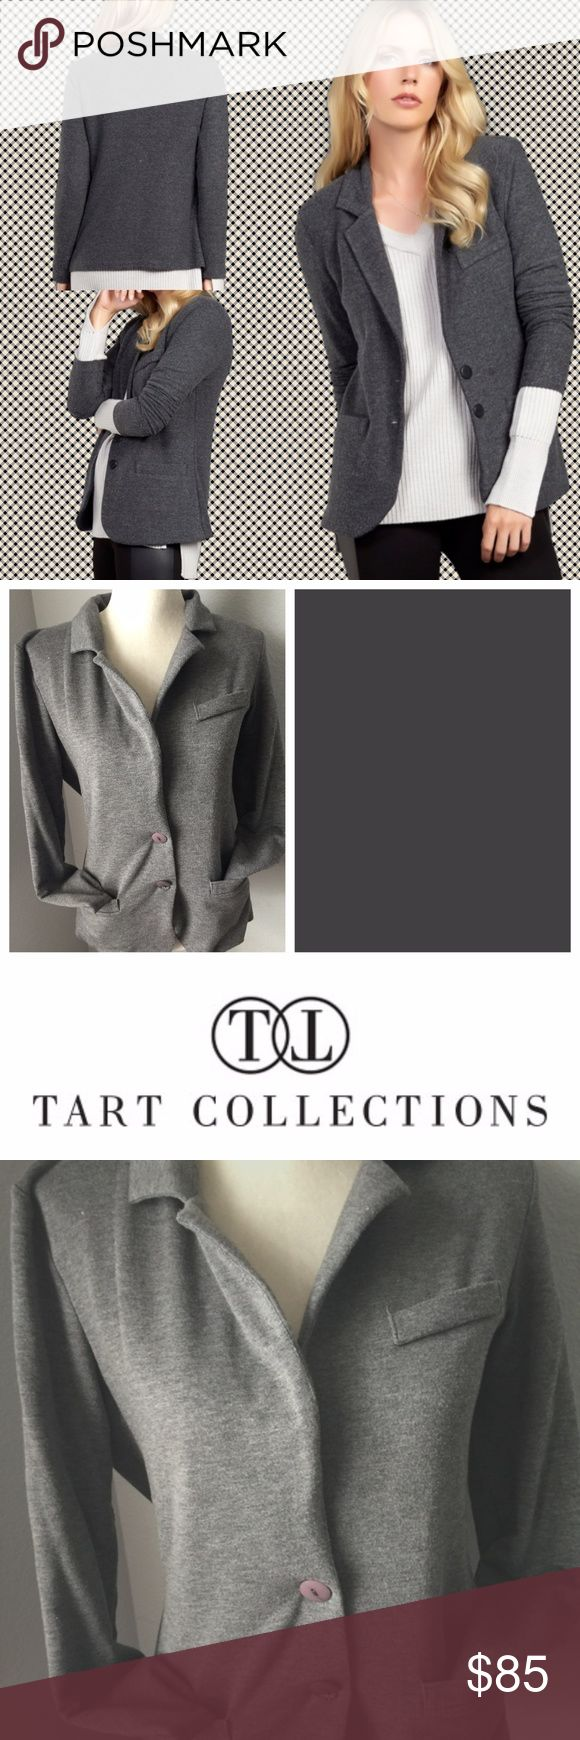 Tart Collections ESSENTIAL BLAZER Tart Collections ESSENTIAL BLAZER  Tarts most loved blazer it's better than ever.  It instantly takes your everyday outfit to the next level.  The condition is like new.  There are shoulder pads in the jacket.  Can easily be taken out if you prefer not to have them.  Modal, Cotton and Spandex. Tart Collection Jackets & Coats Blazers